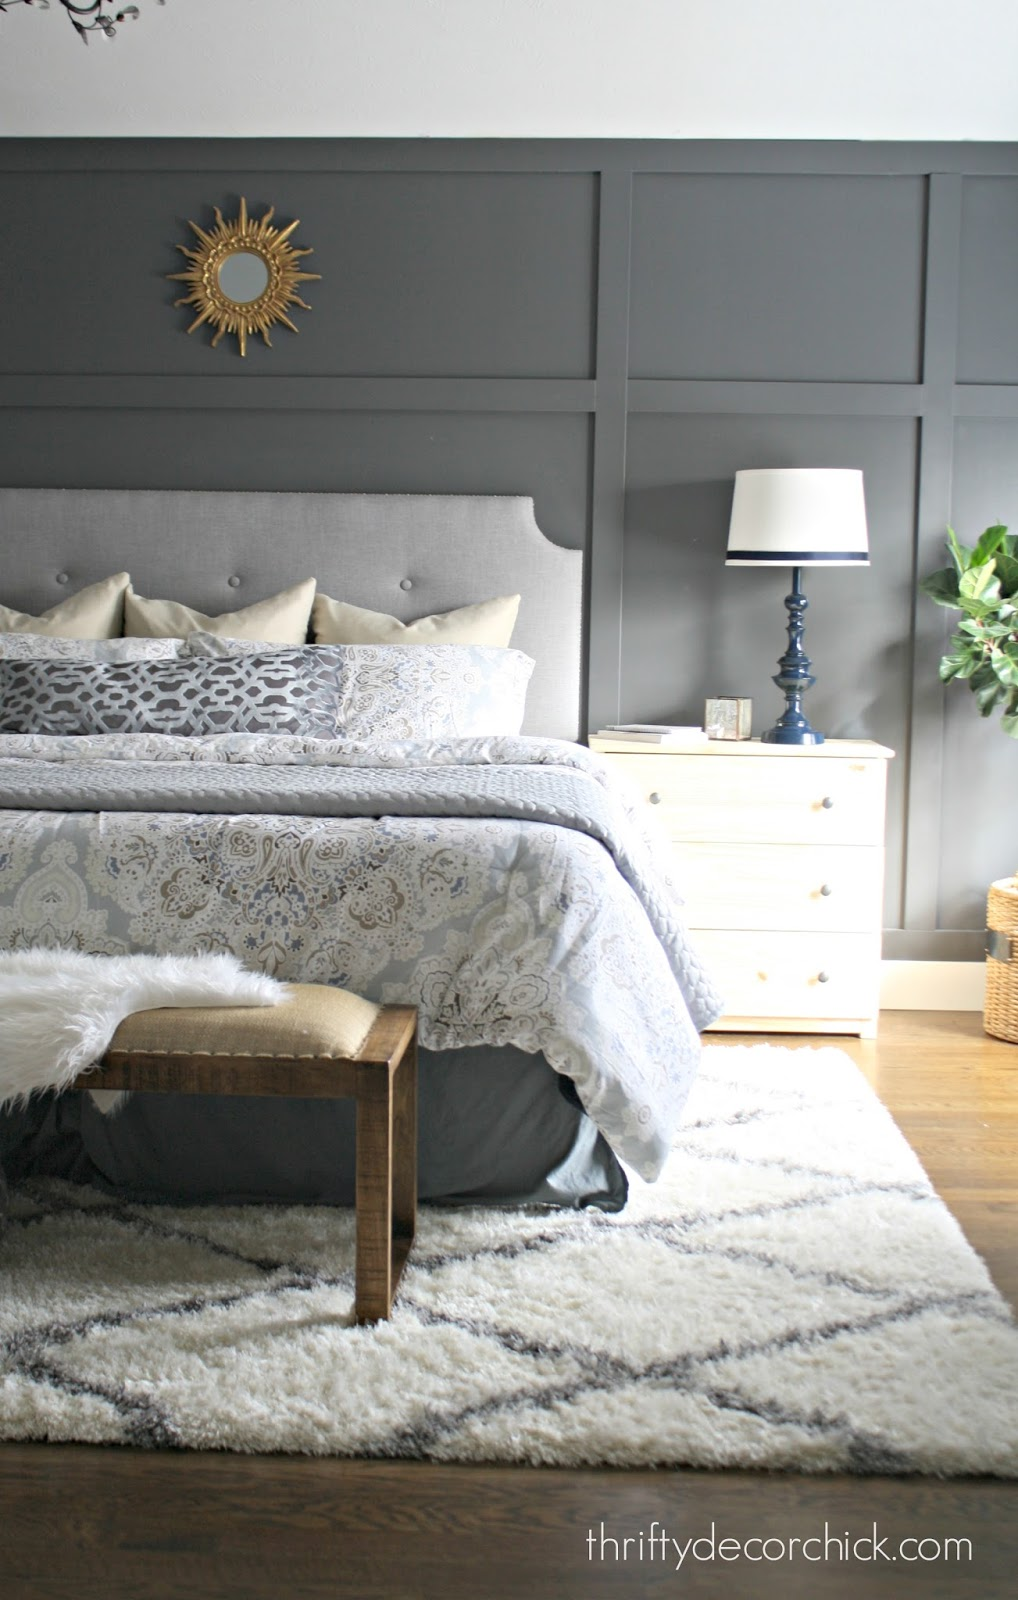 new bedding in the master and more diy pillows from thrifty tarva ikea dresser as nightstand